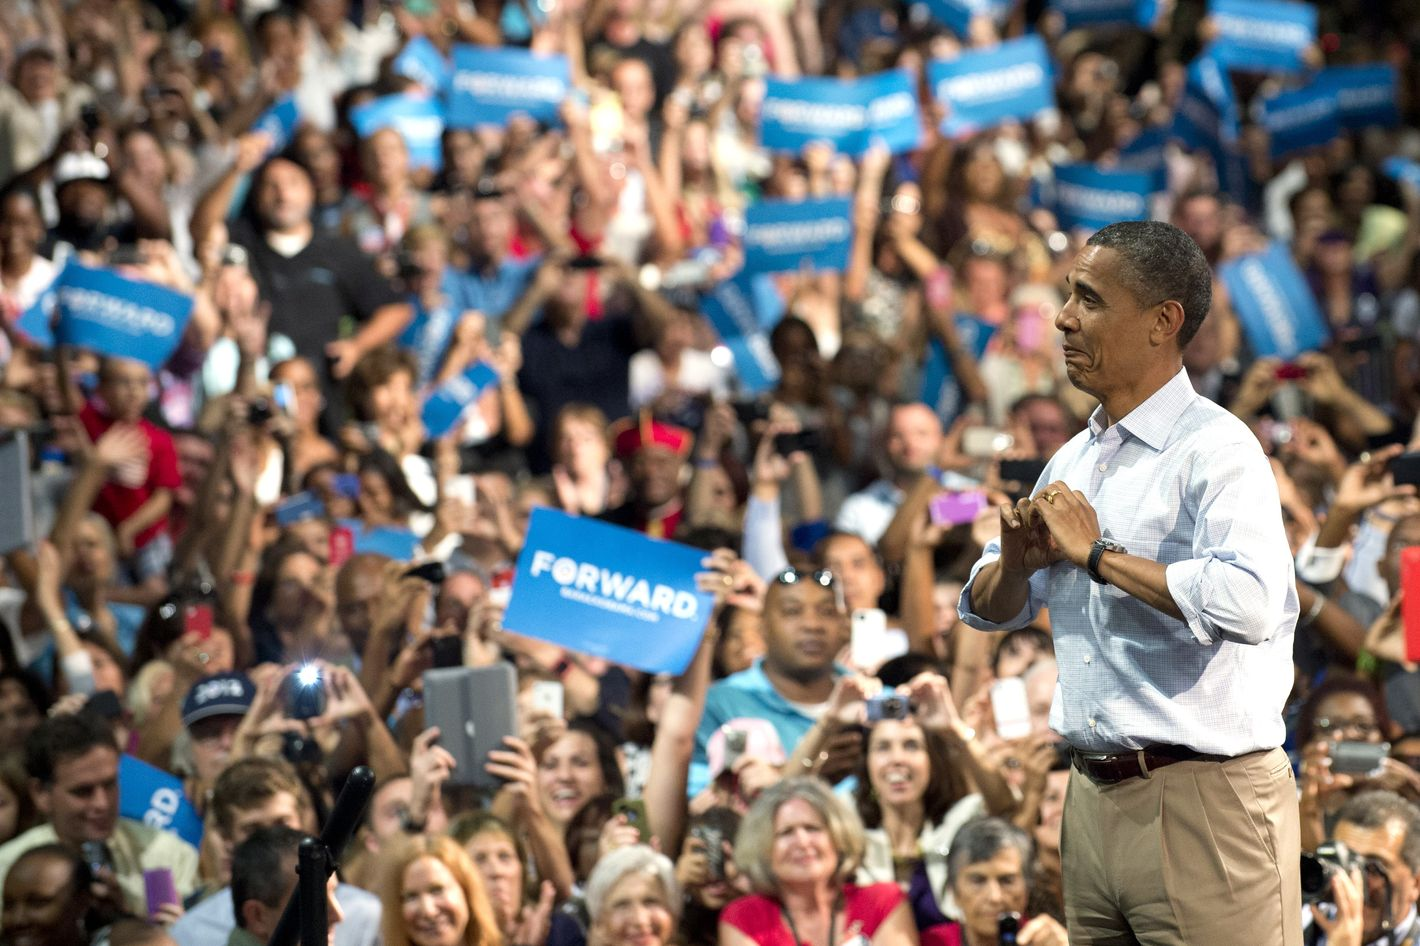 US President Barack Obama makes a heart with his hands as he arrives to speak during a campaign event at the Palm Beach County Convention Center in West Palm Beach, Florida, on September 9, 2012 during the second day of a 2-day bus tour across Florida.